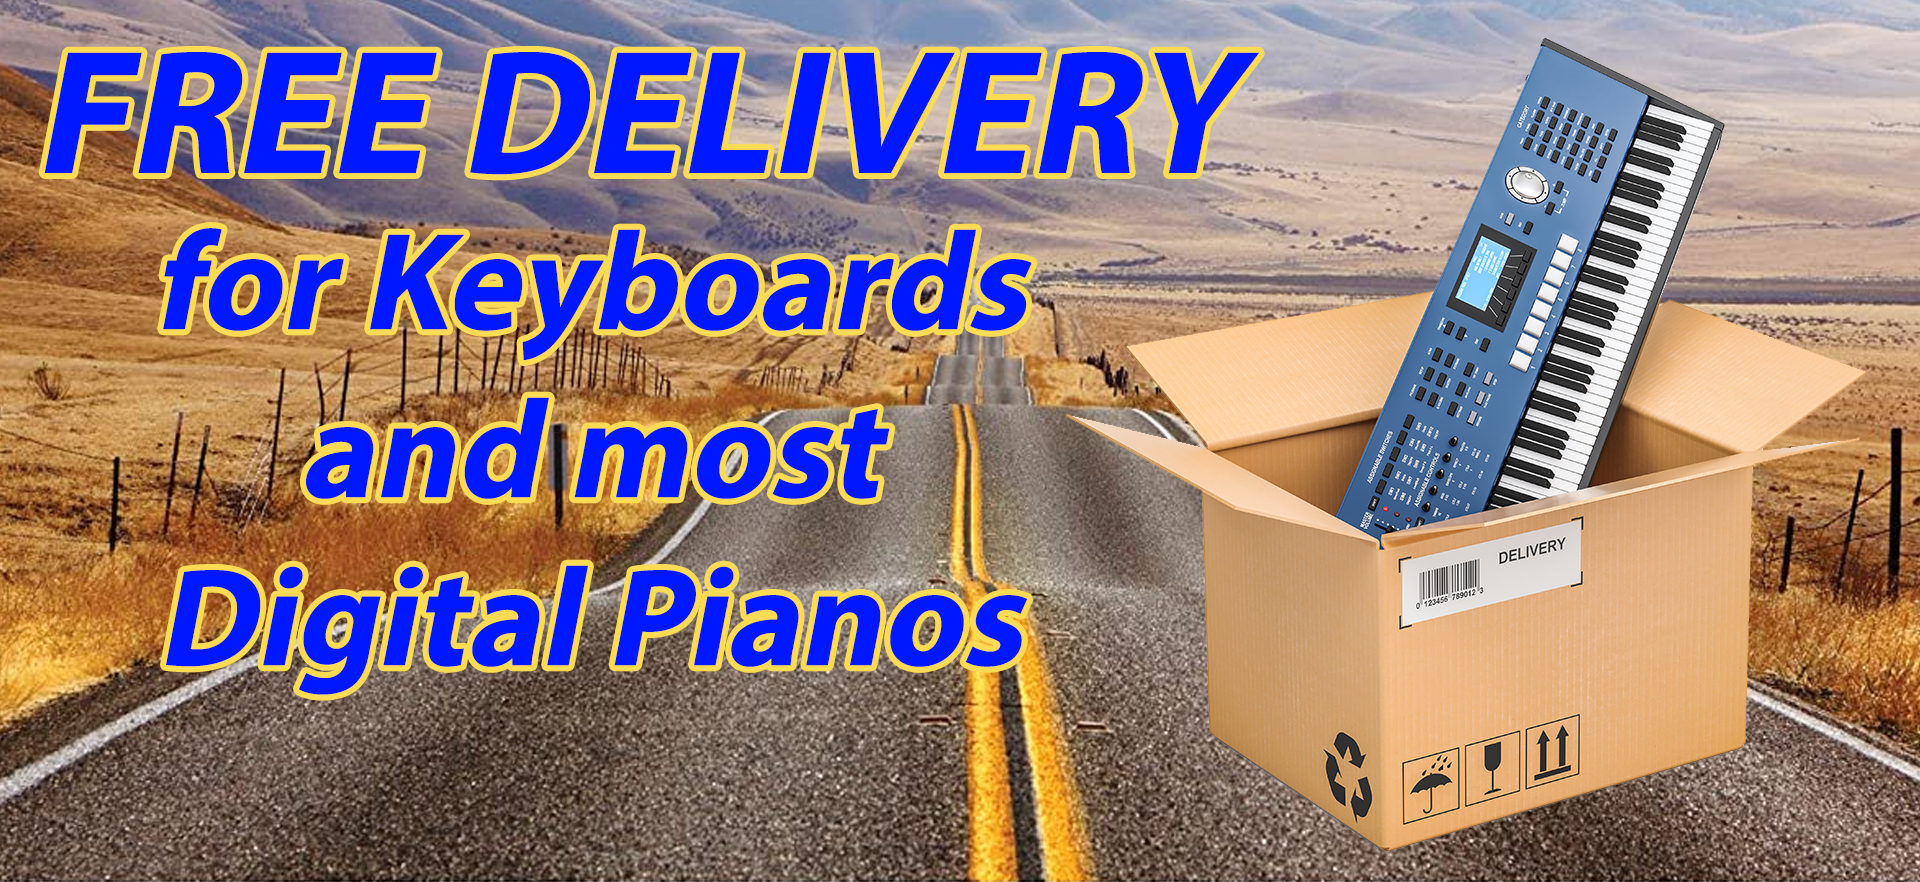 freedeliveryforkeyboardsandmostdigitalpianos.png